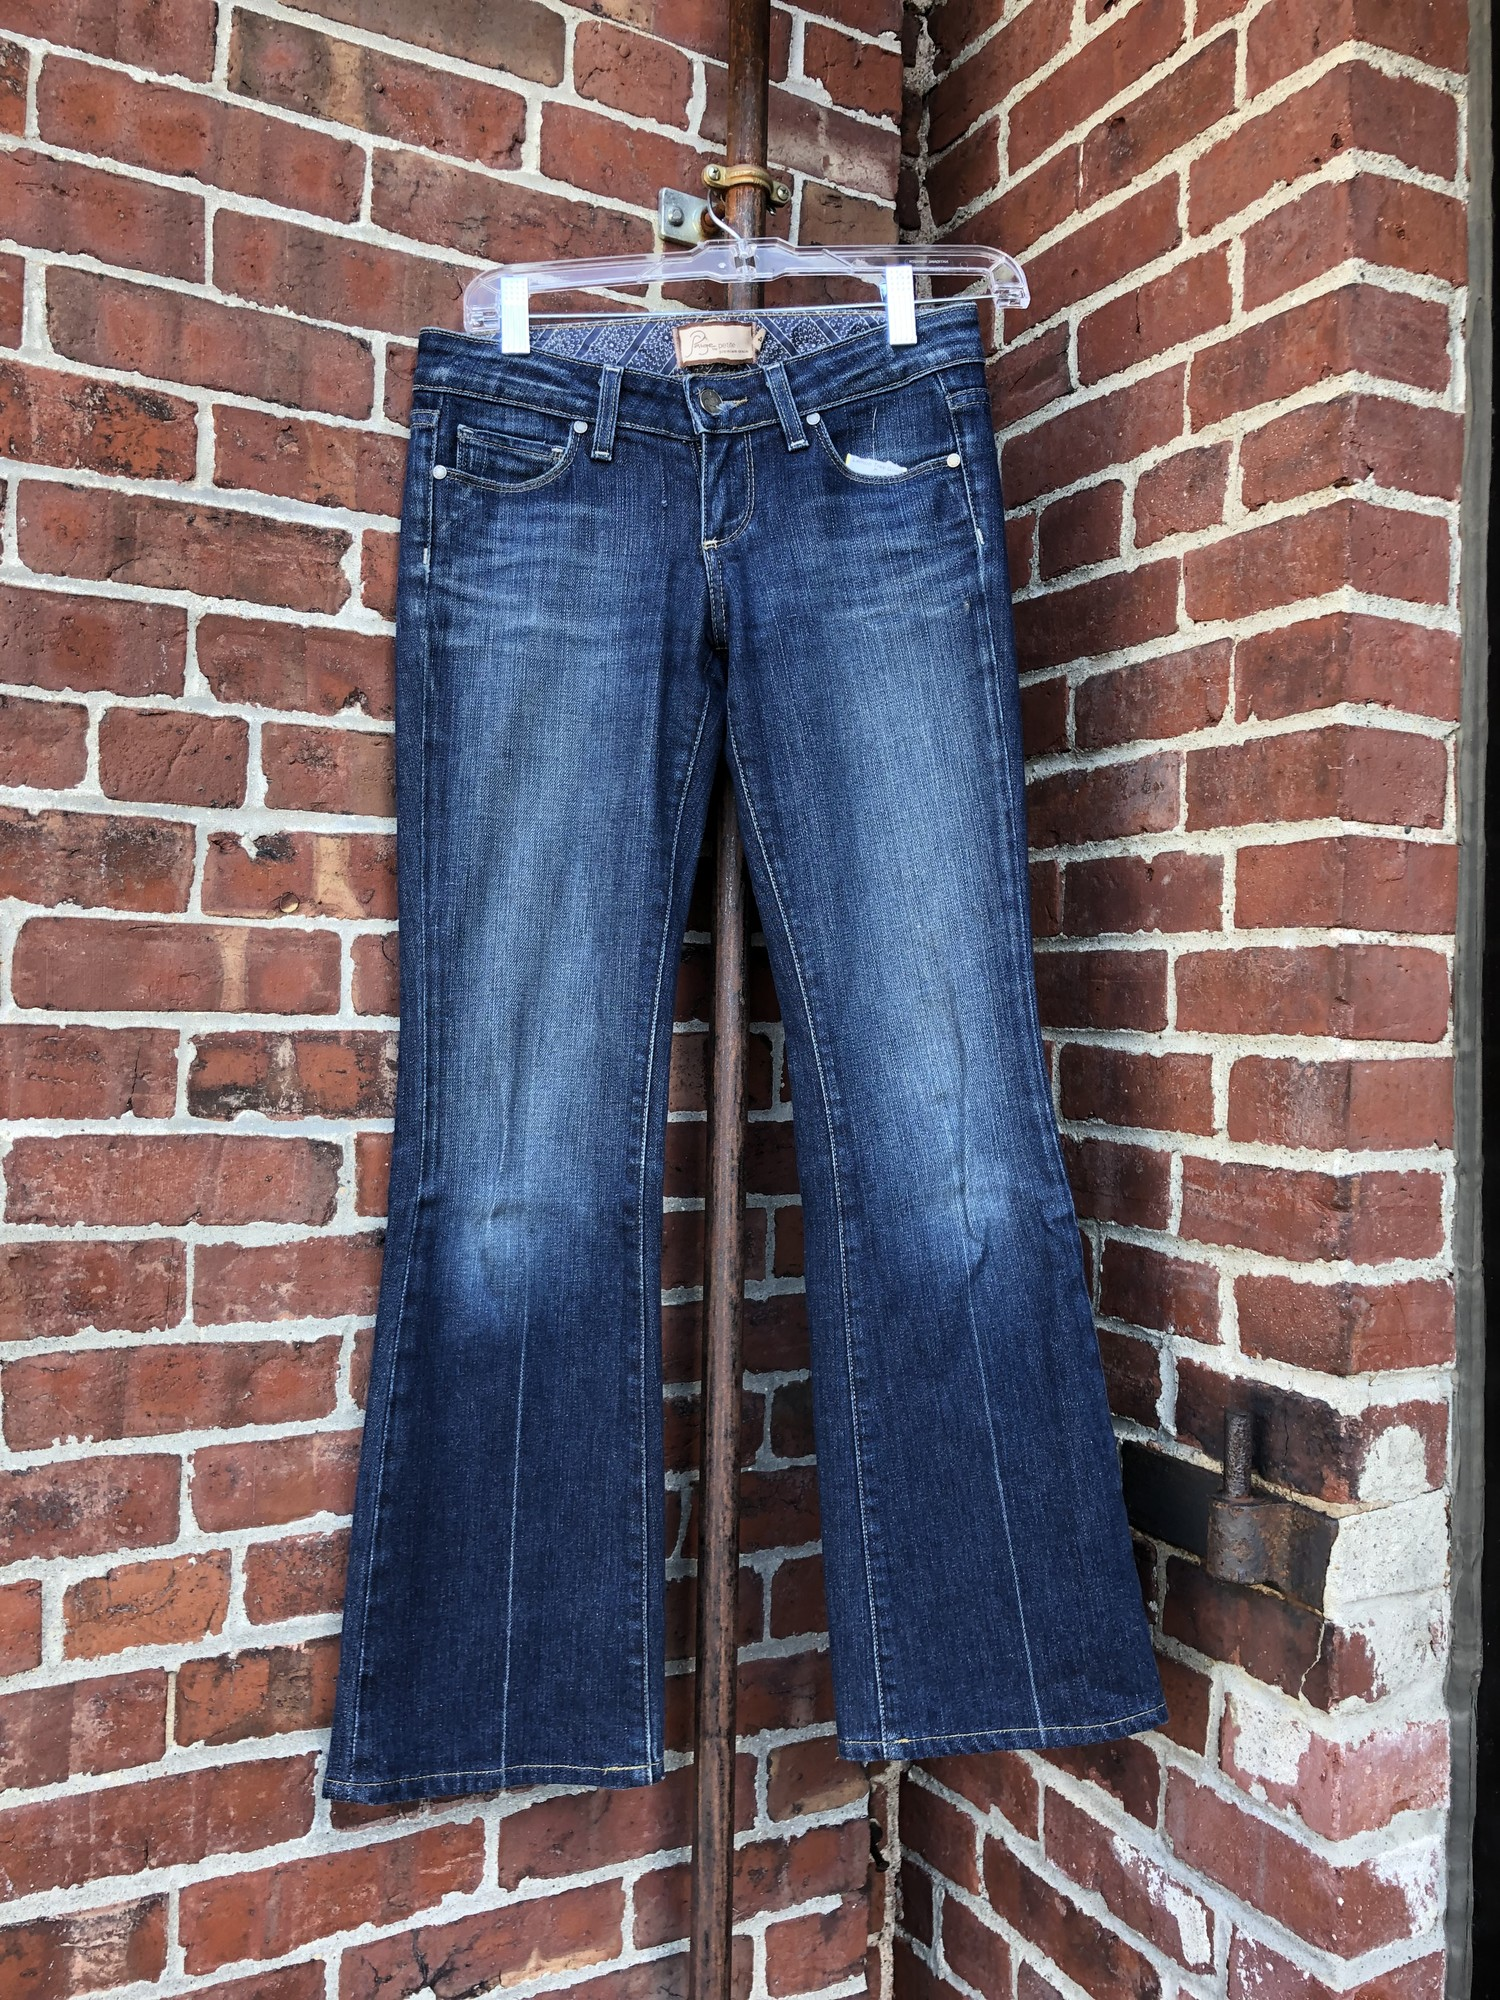 Paige Jeans, Dark Wash, Size 24. In new condition.